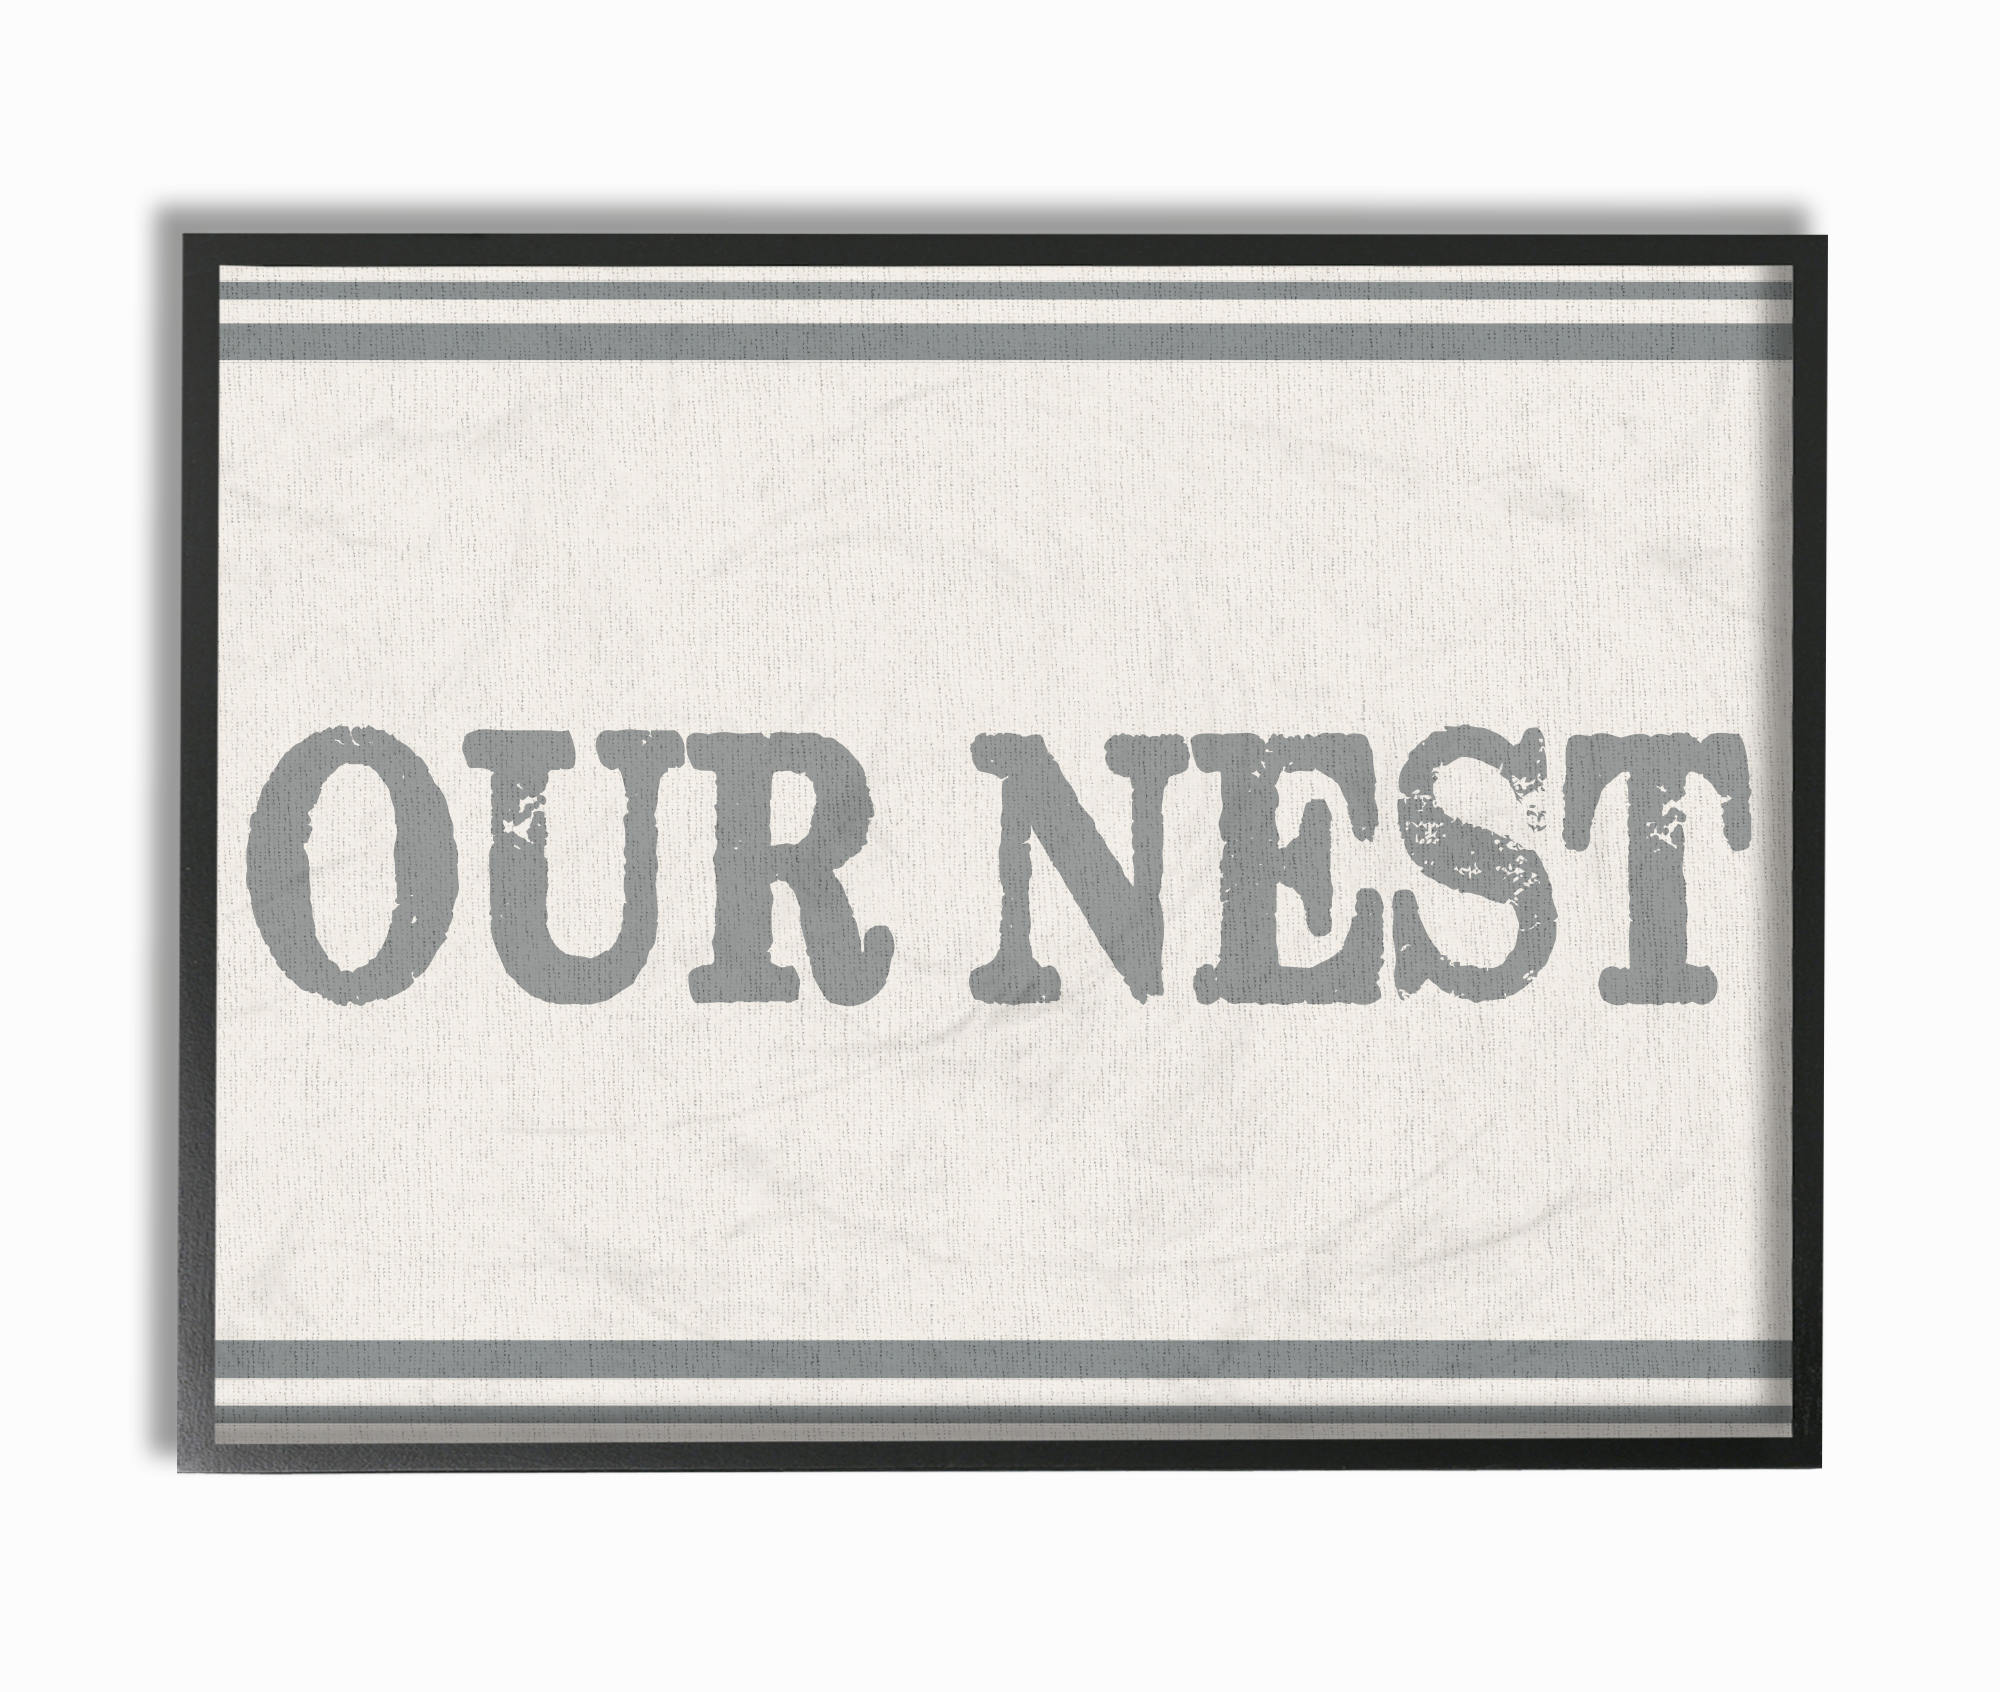 The Stupell Home Decor Collection Our Nest Flour Sack Typography Framed Giclee Texturized... by Stupell Industries